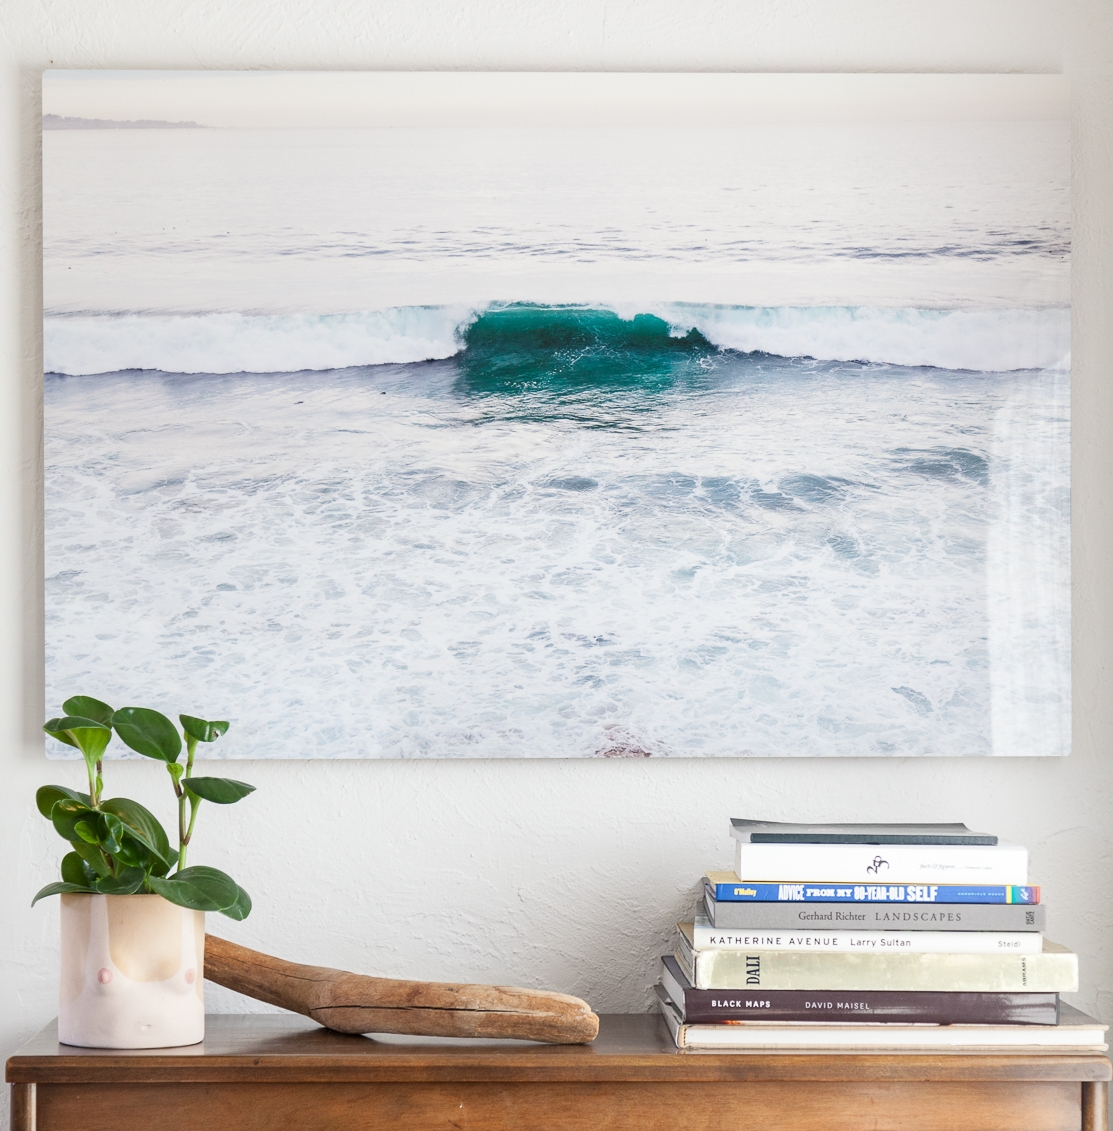 prints - available exclusively at burkedecor.com